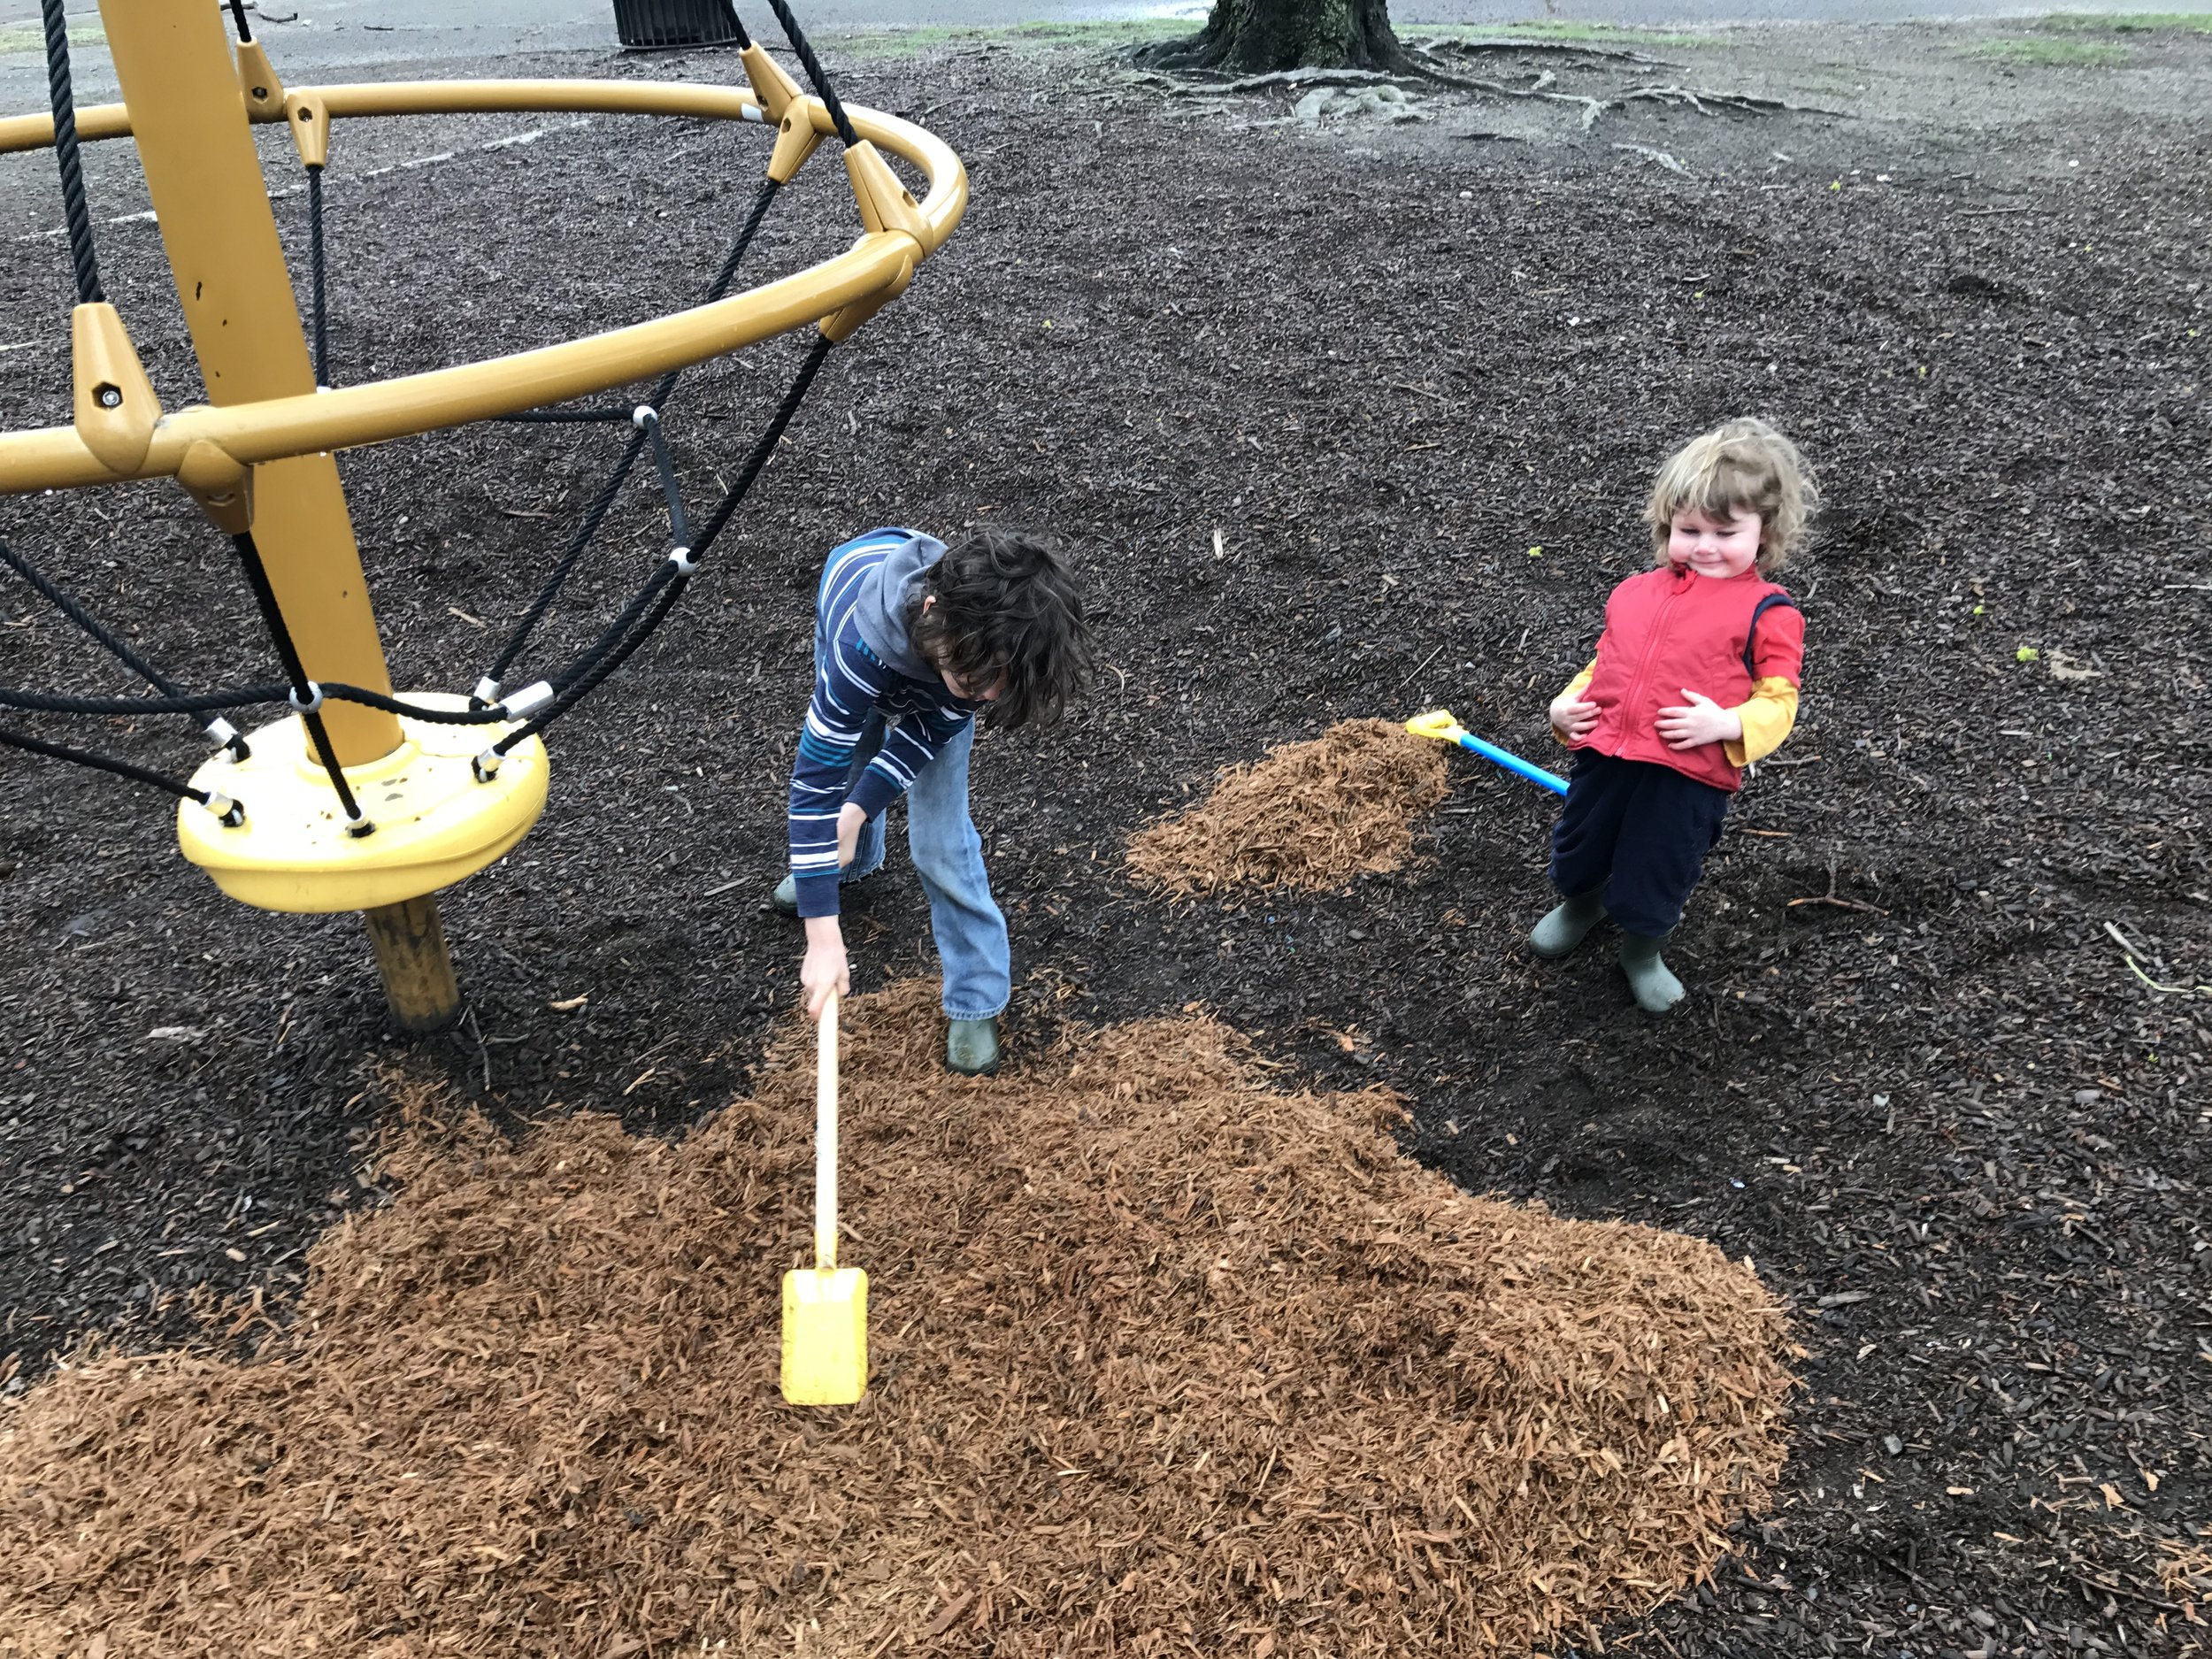 It takes many small hands to spread new playground mulch Photo credit: Caleb Borchers